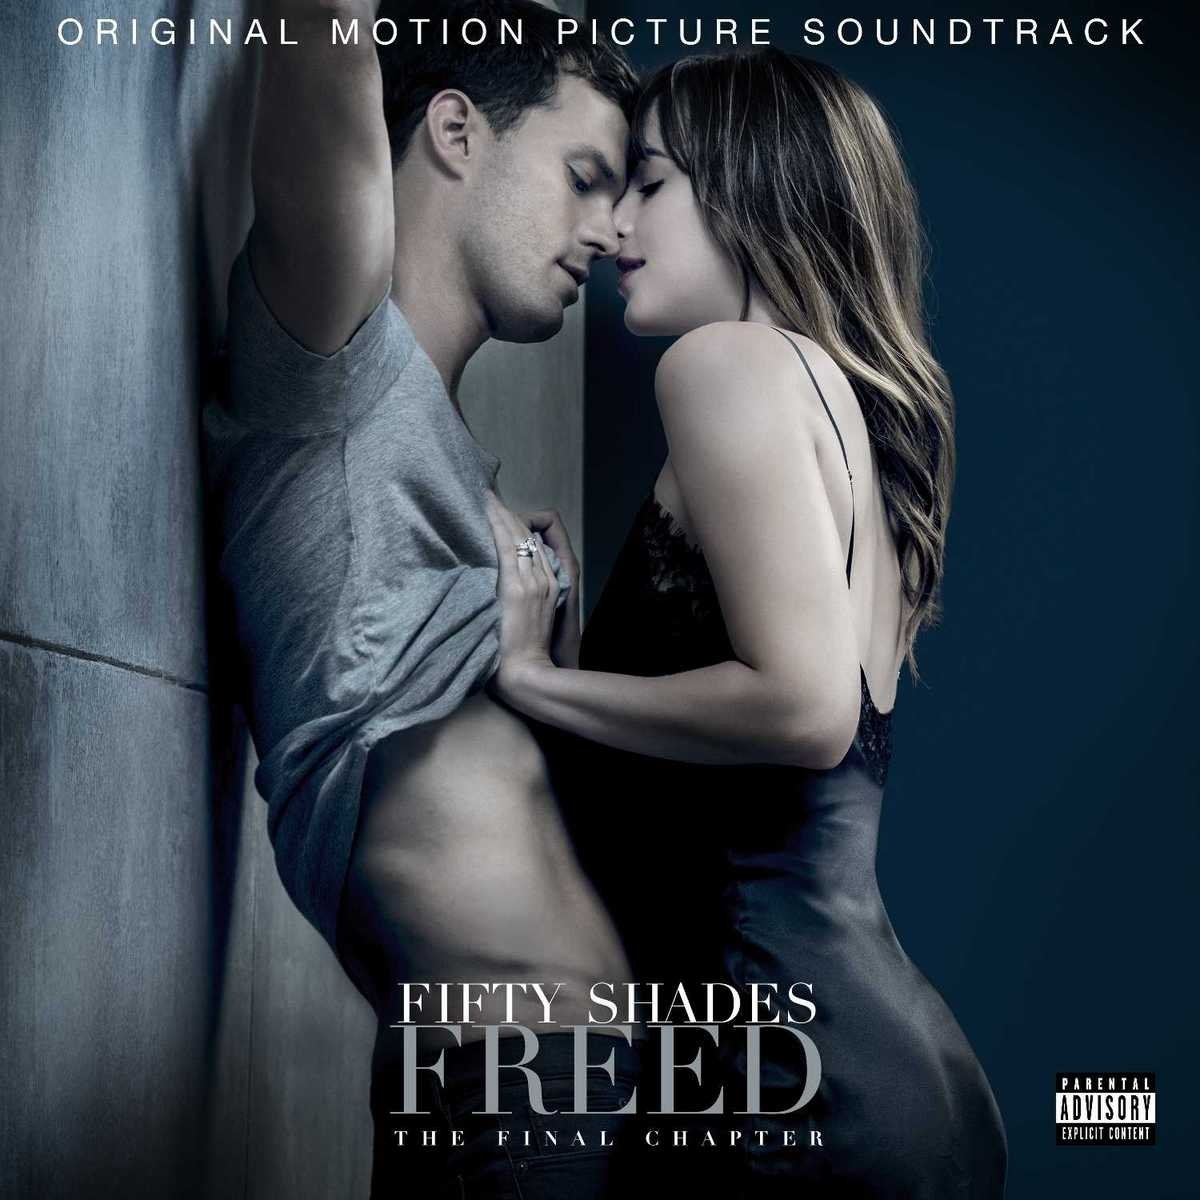 Various Artists - Fifty Shades Freed (Original Motion Picture Soundtrack) -  Amazon.com Music